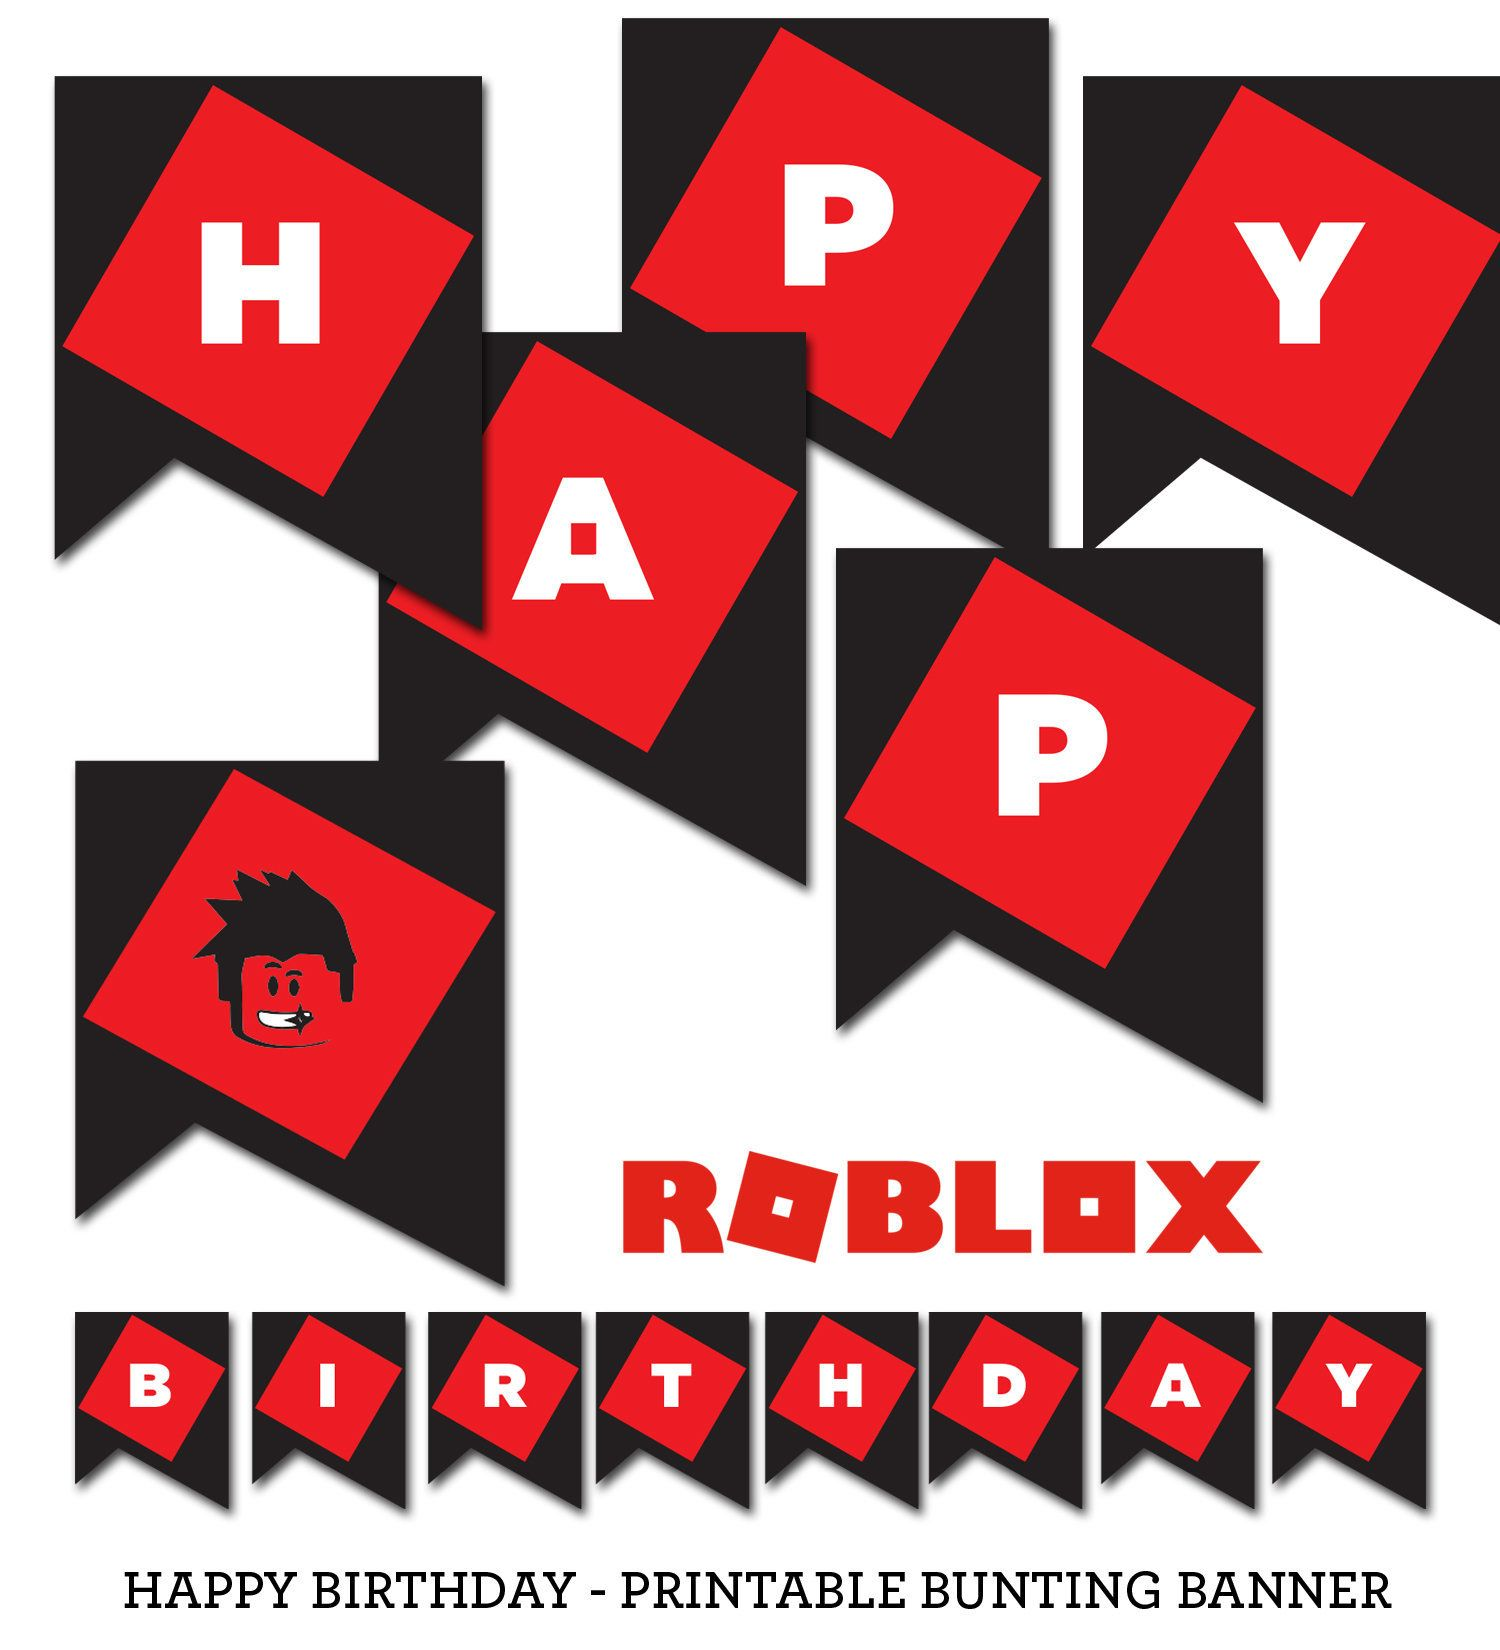 Roblox Inspired Happy Birthday Bunting Printable Banner Digital Download Easy To Print At Ho Happy Birthday Bunting Happy Birthday Printable Birthday Bunting